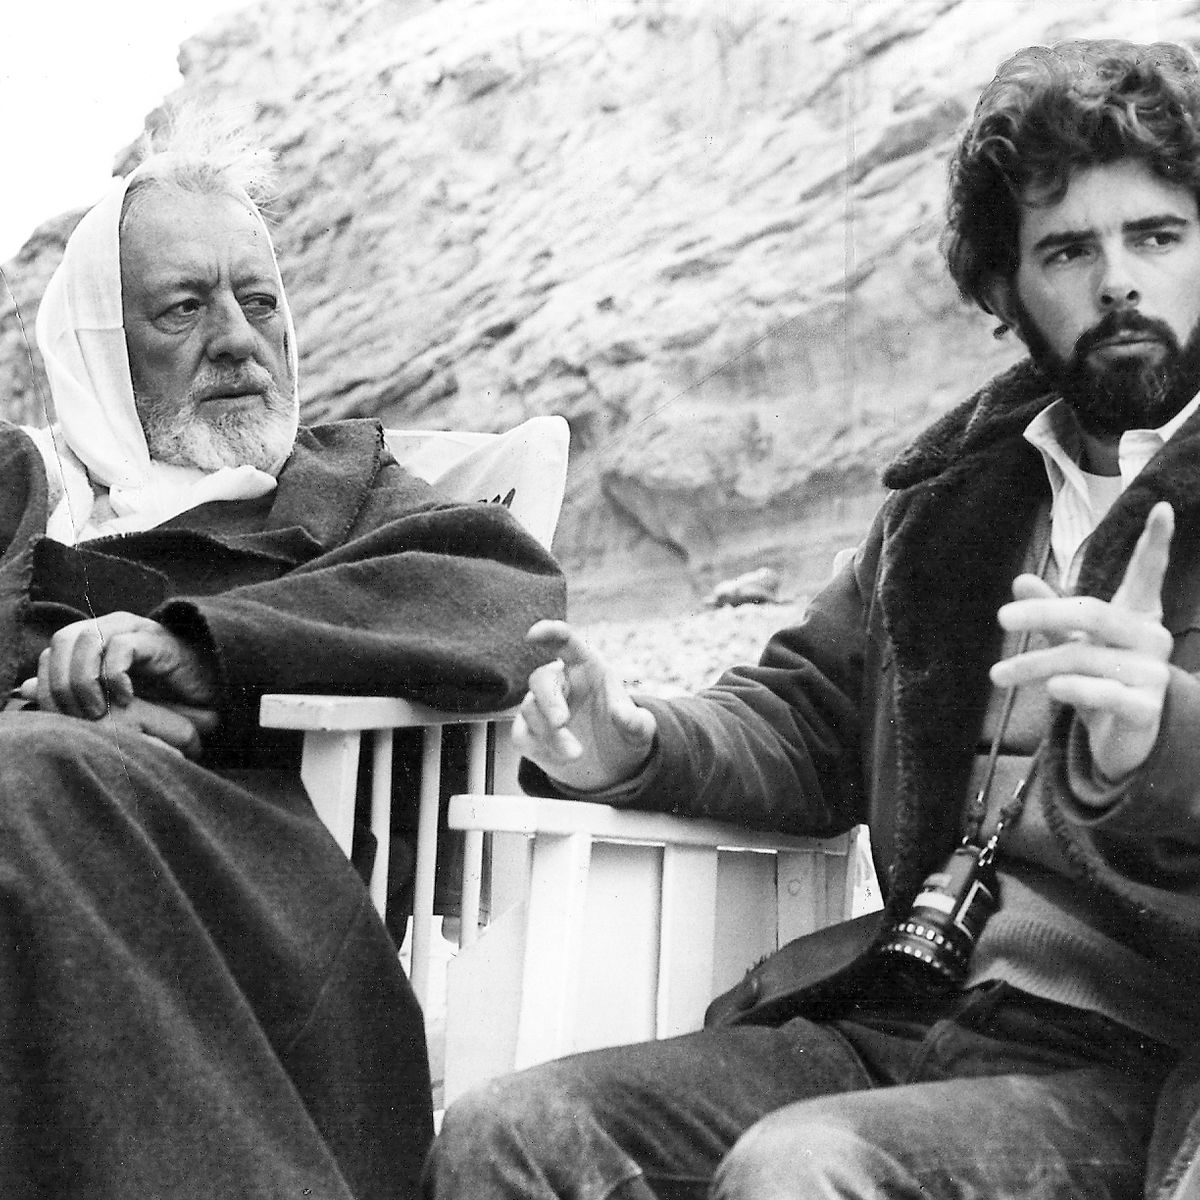 george-lucas-and-alec-baldwin-star-wars.jpg